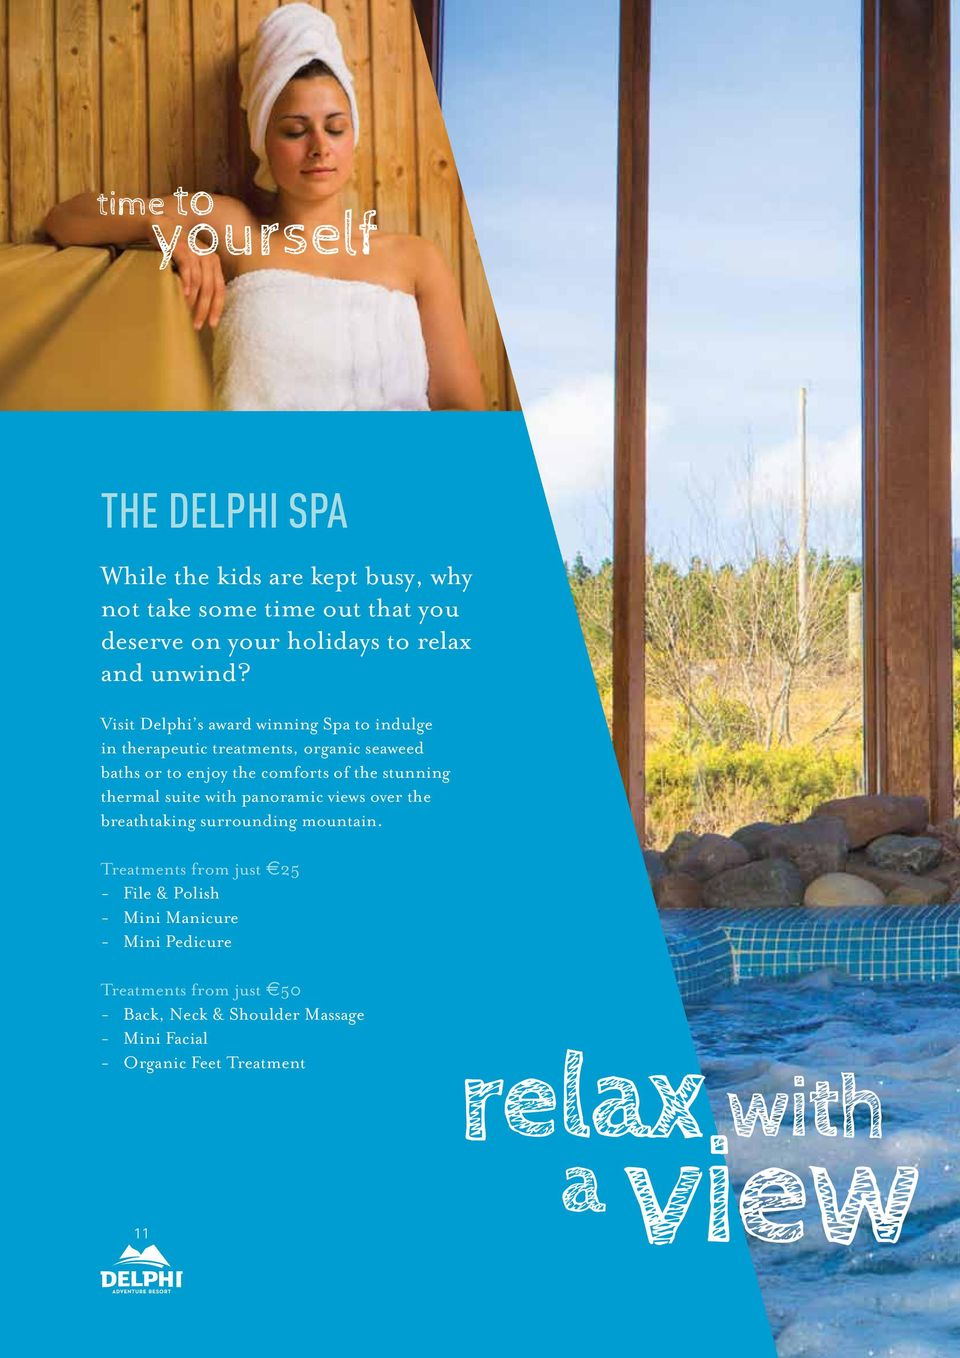 Visit Delphi s award winning Spa to indulge in therapeutic treatments, organic seaweed baths or to enjoy the comforts of the stunning